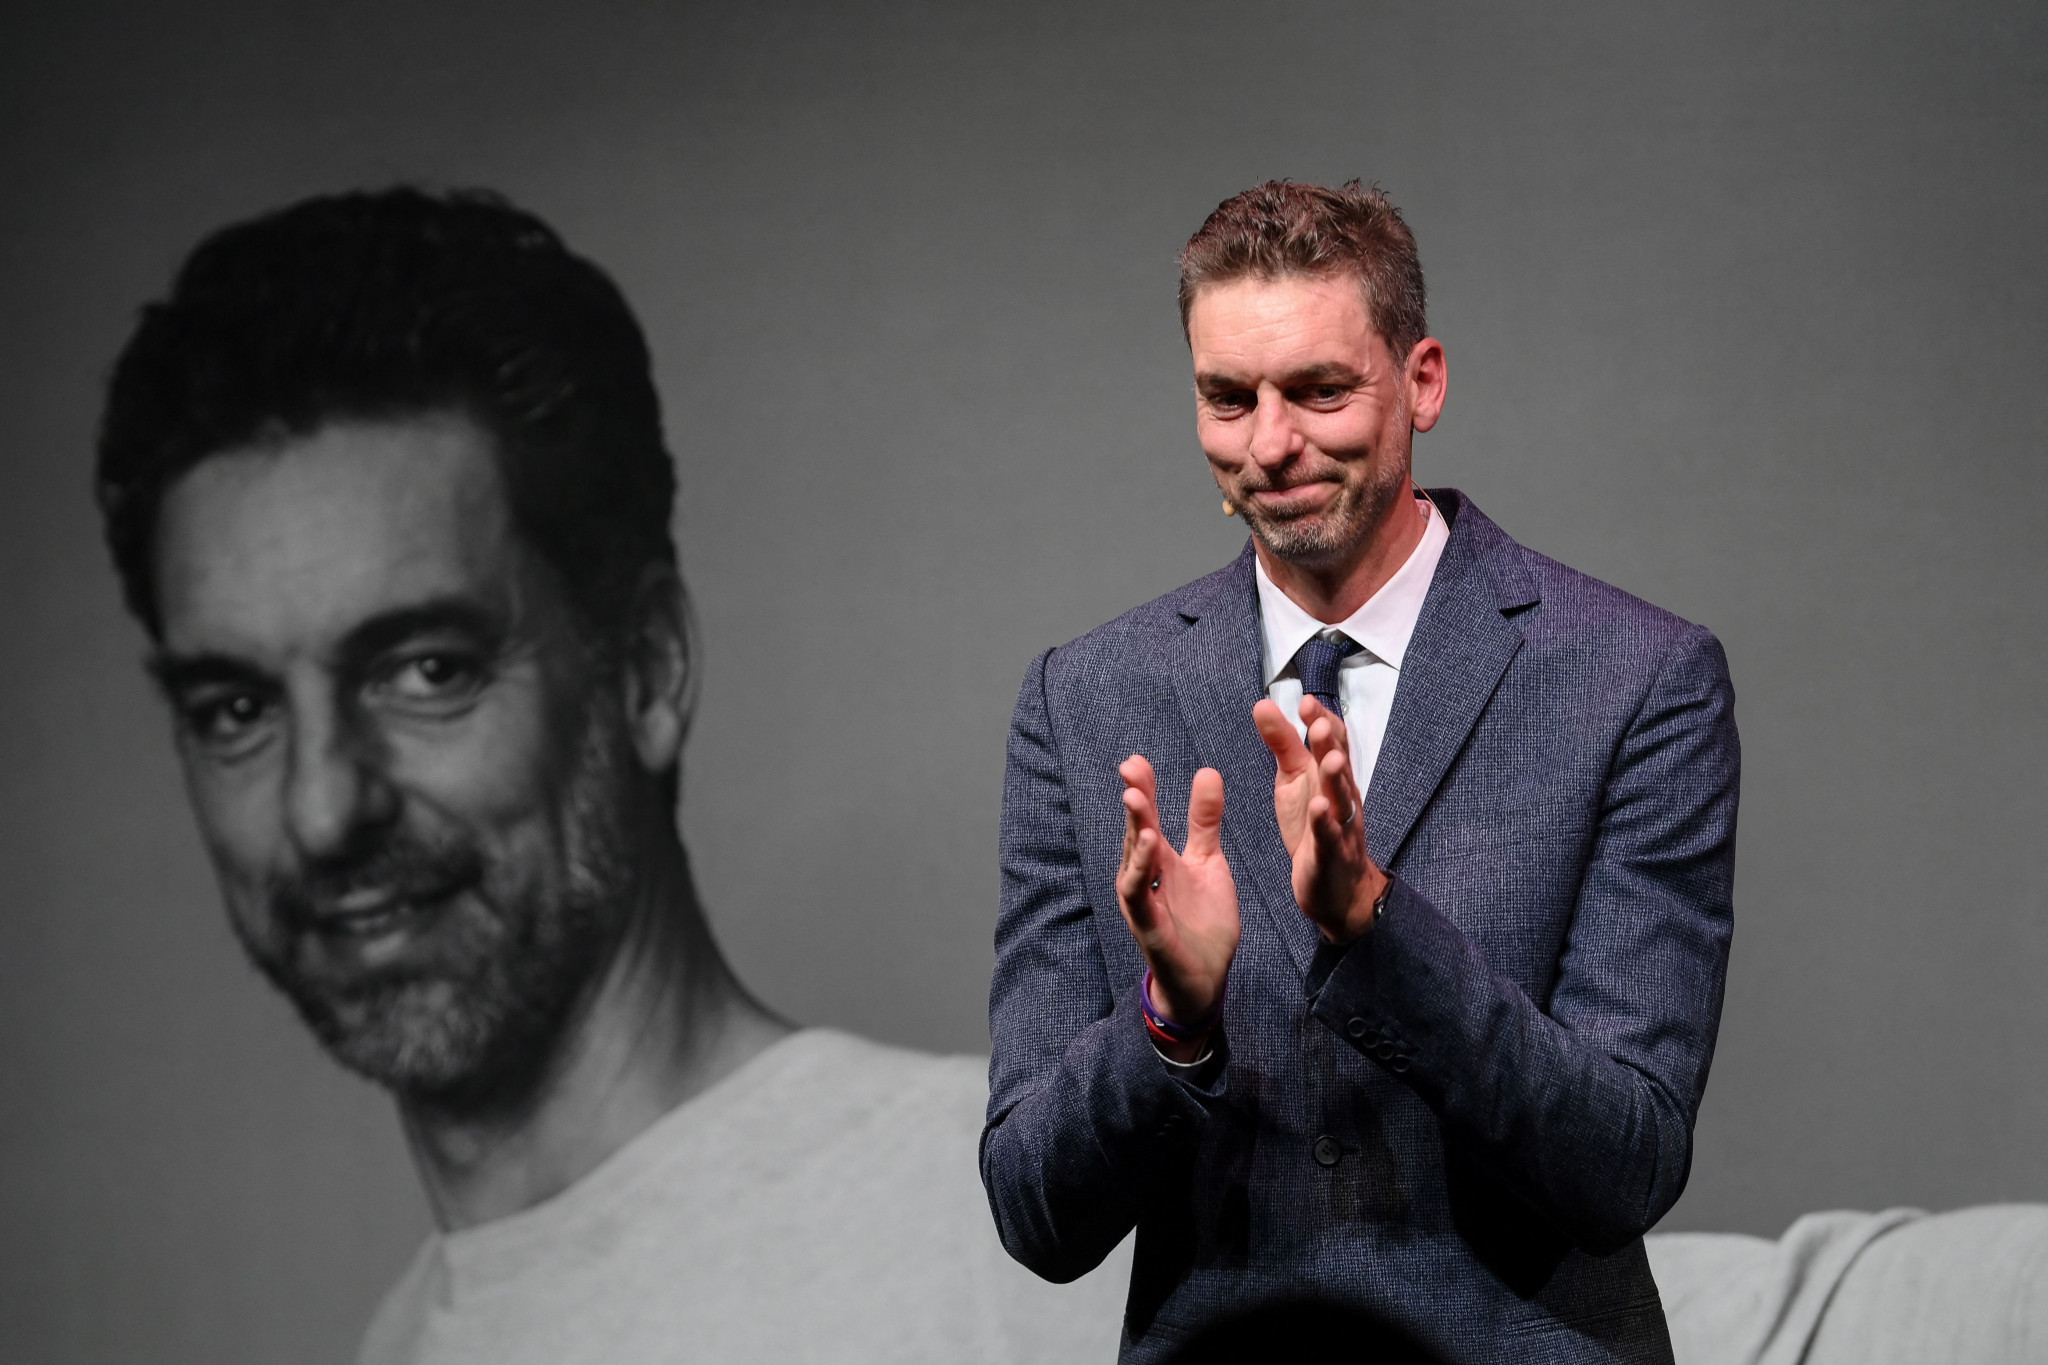 IOC Athletes' Commission member Gasol announces retirement from basketball